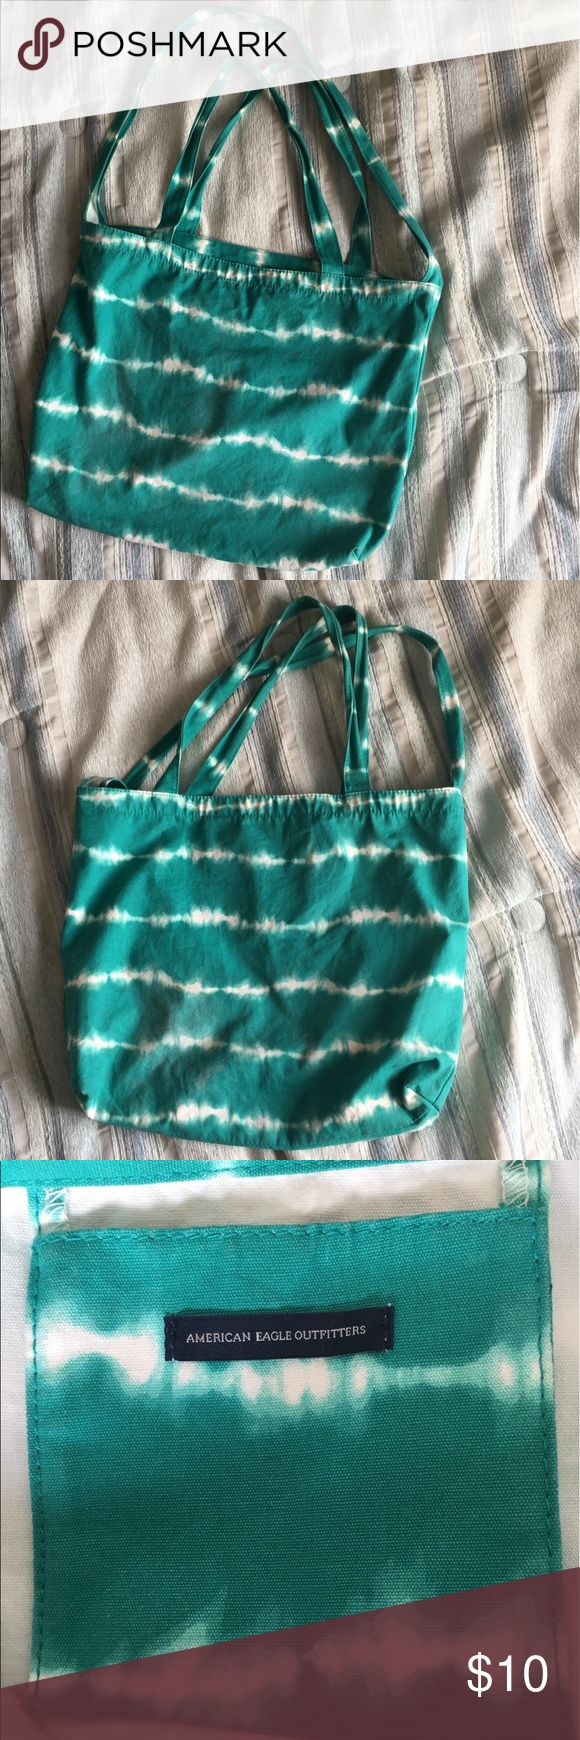 American Eagle Outfitters Tote Tie dye Turquoise color Great from traveling No holes No rips American Eagle Outfitters Bags Totes